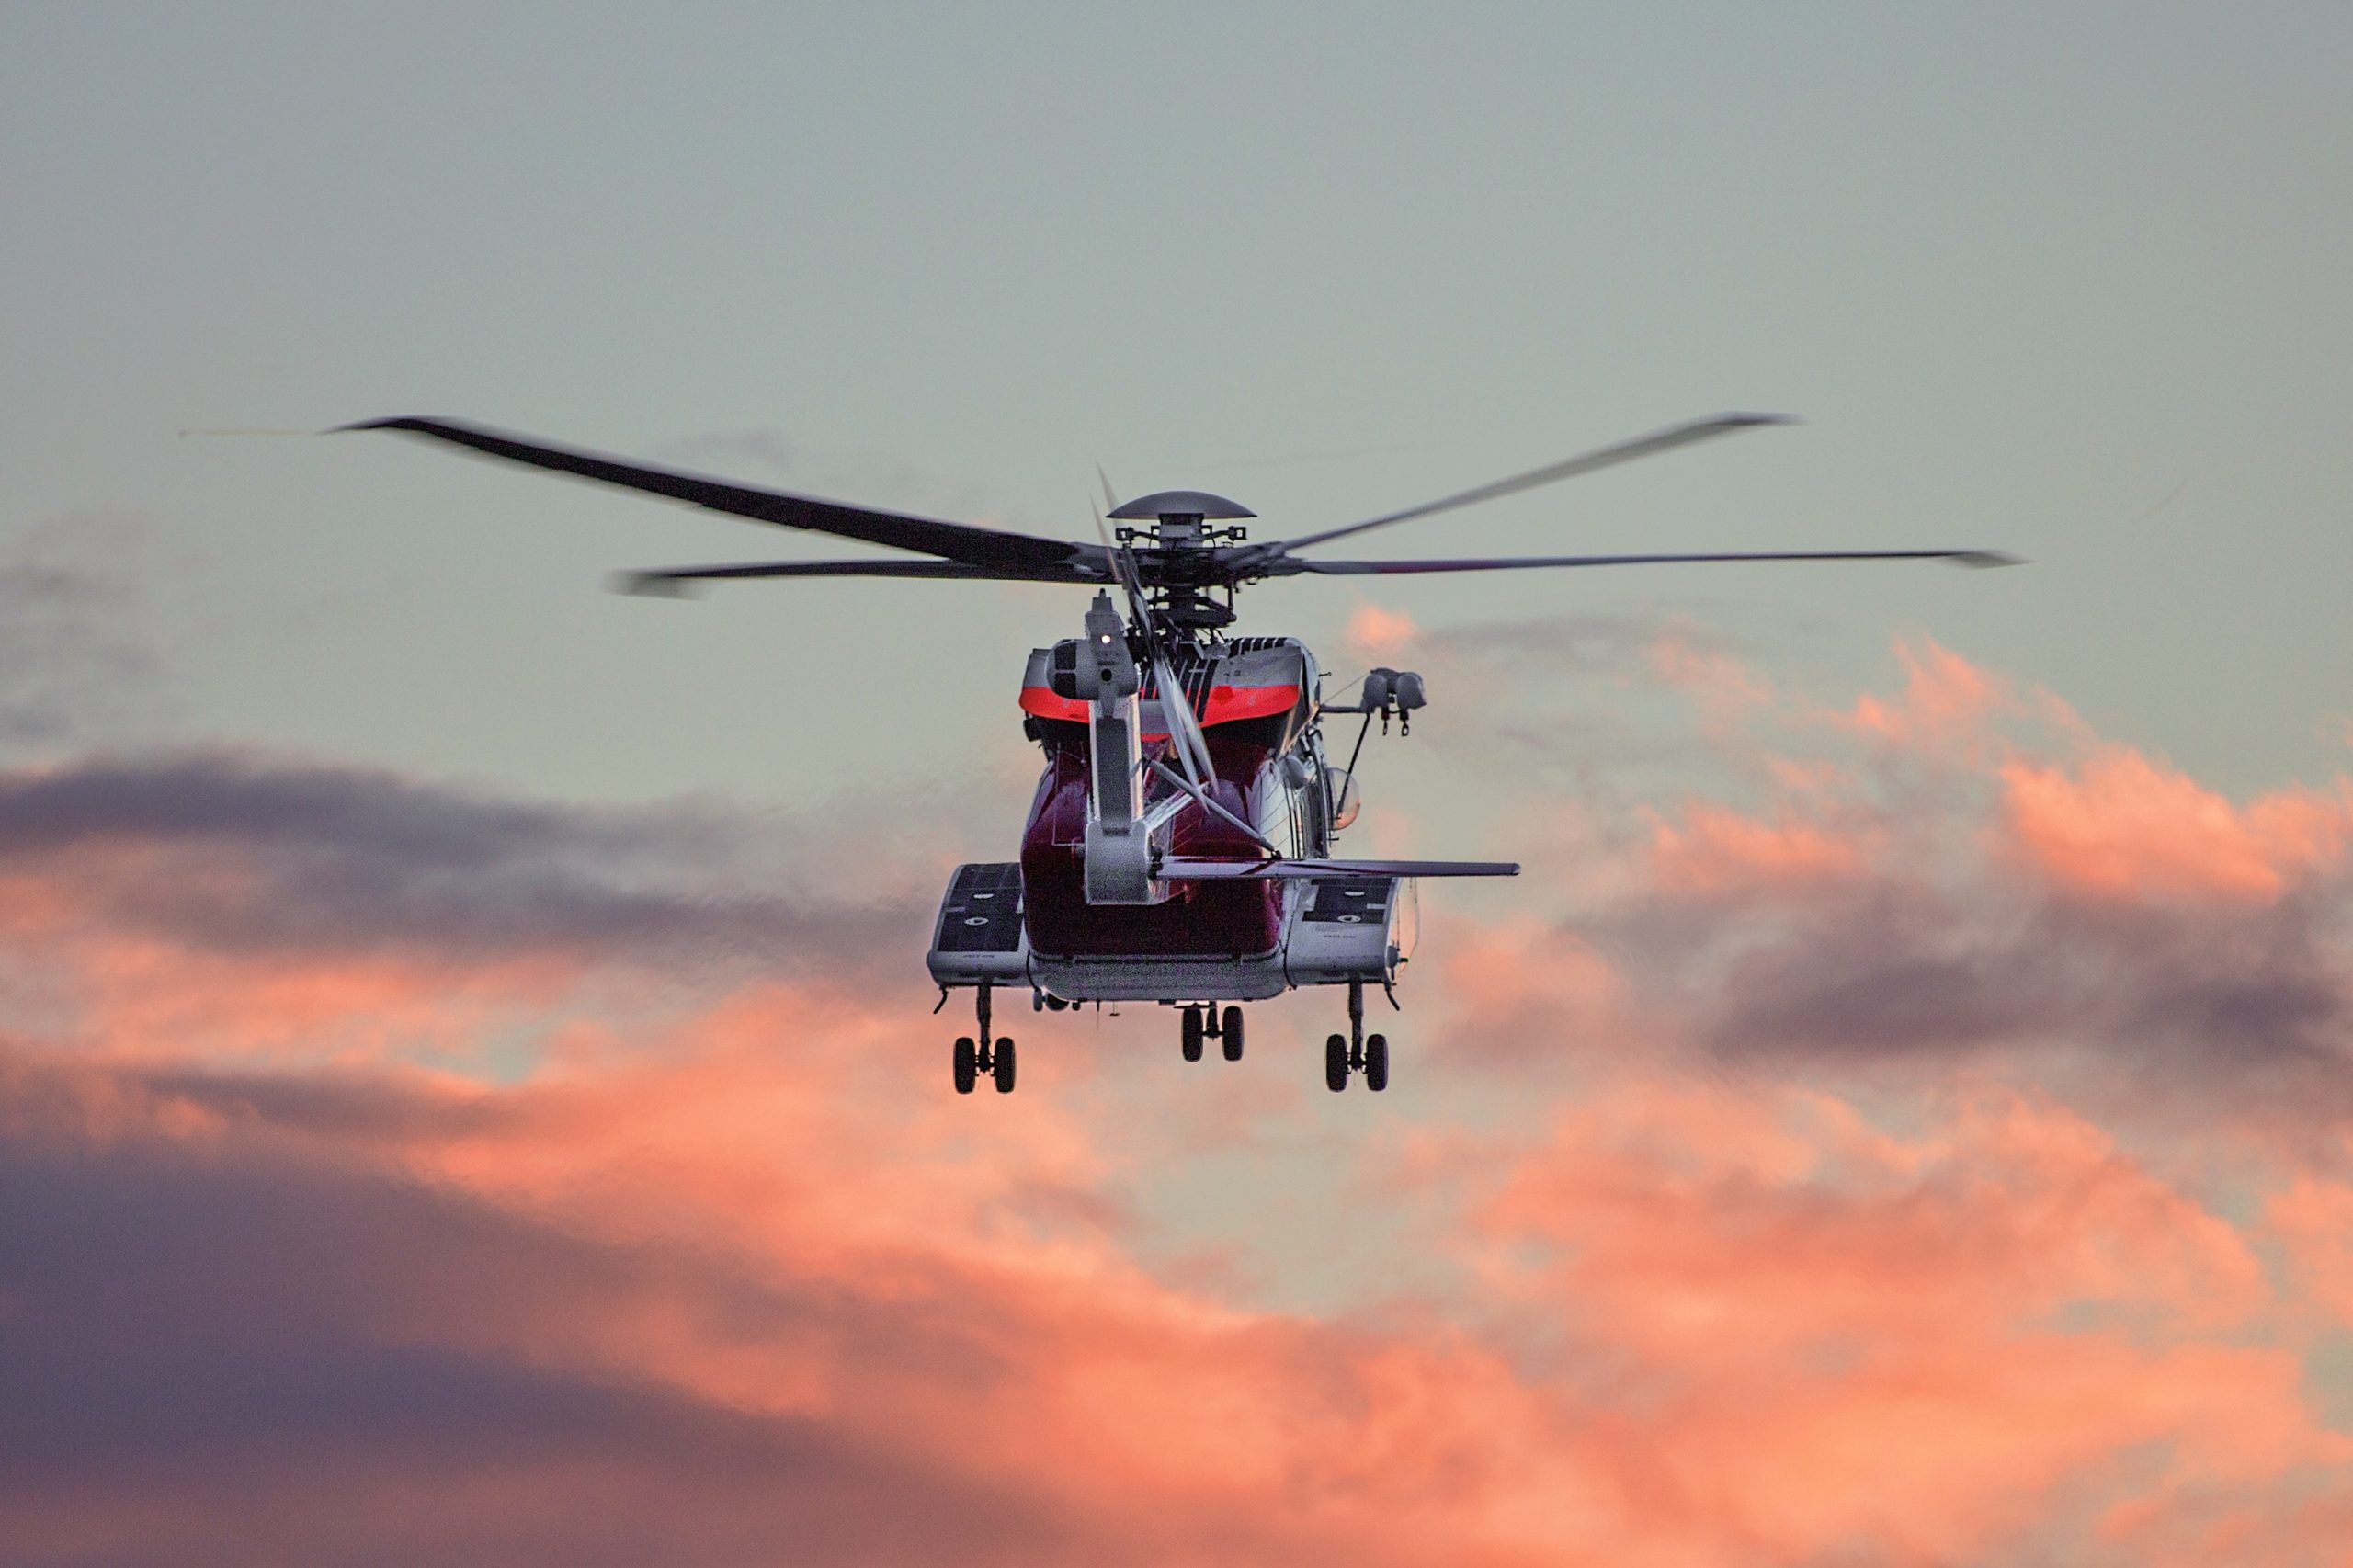 Lease Finance Helicopter Transactions: Finding Creative Solutions During Covid-19